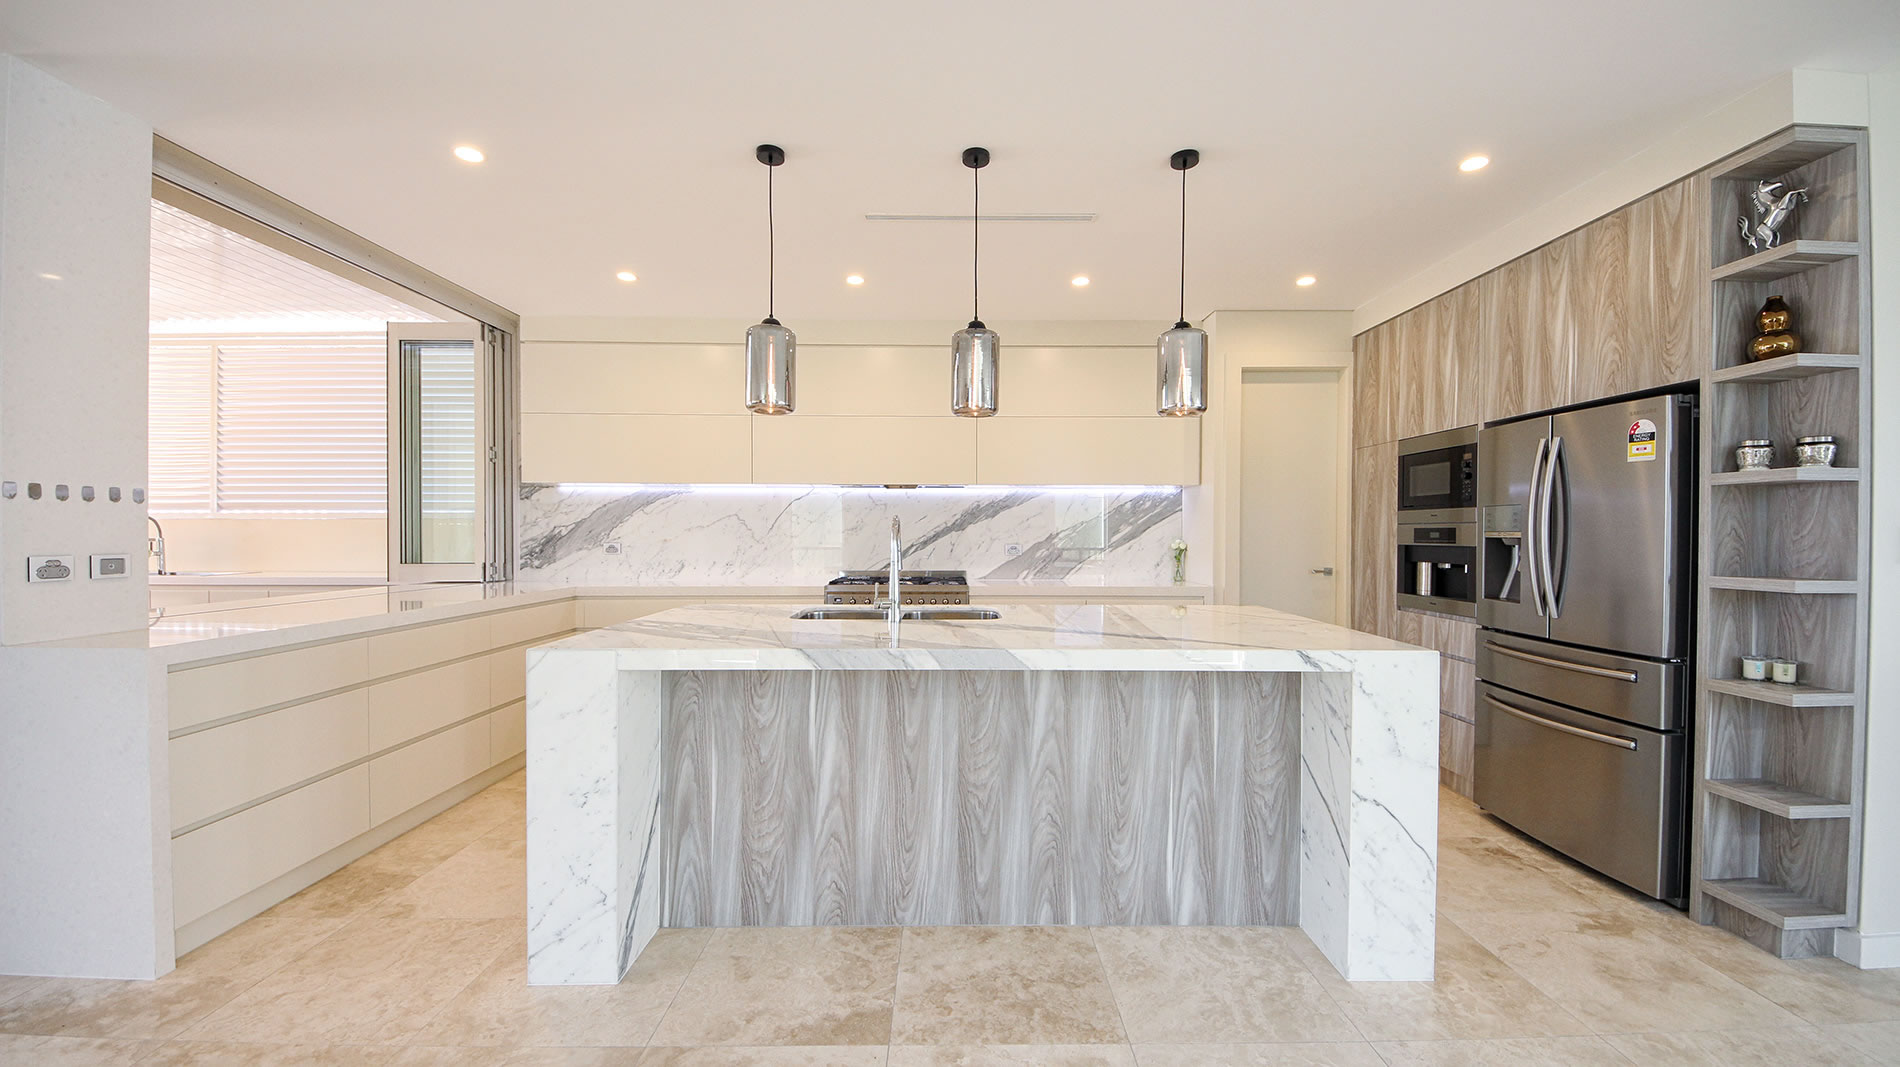 Kitchens sydney kitchen renovation perfect kitchens for Who makes the best kitchens